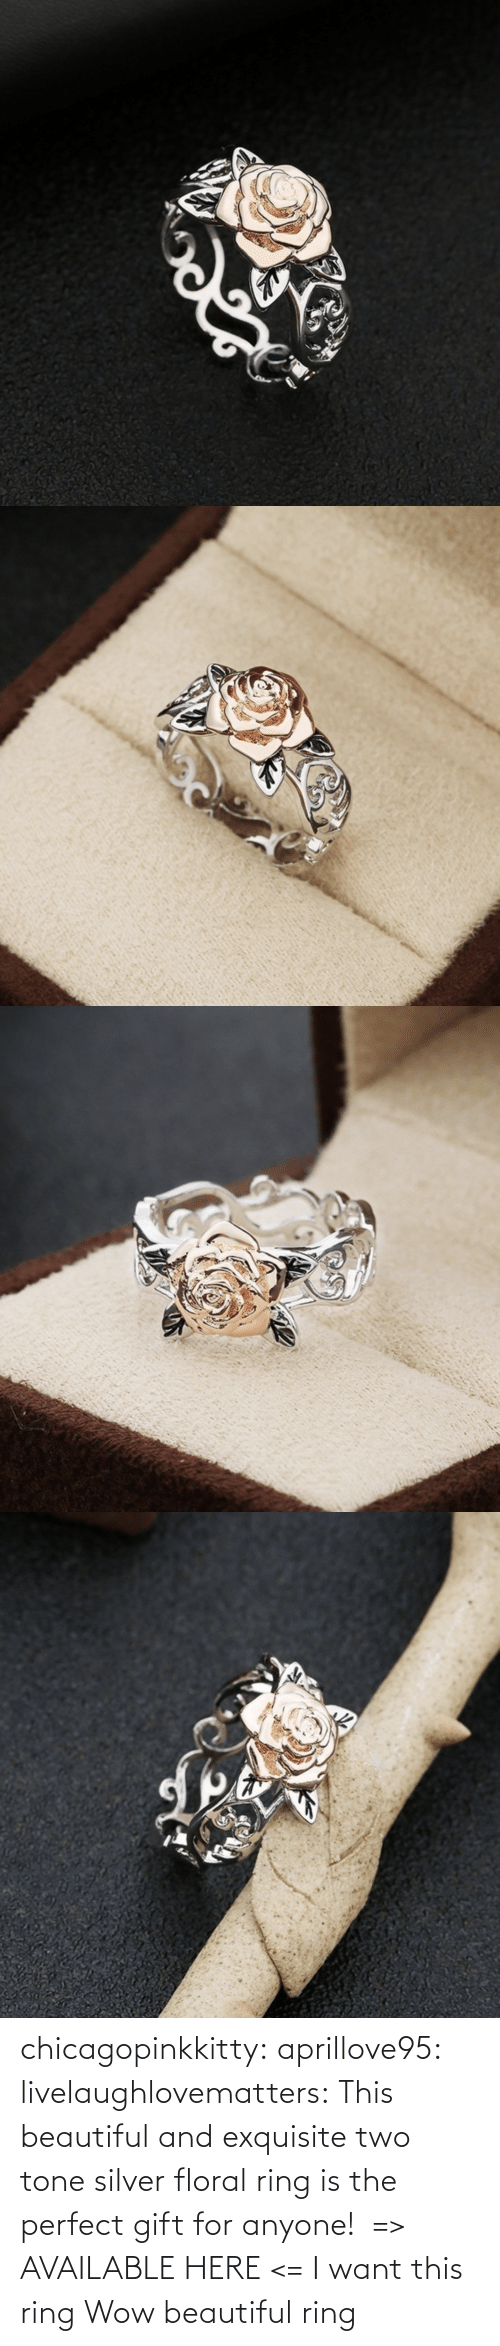 anyone: chicagopinkkitty: aprillove95:  livelaughlovematters:  This beautiful and exquisite two tone silver floral ring is the perfect gift for anyone!  => AVAILABLE HERE <=    I want this ring     Wow beautiful ring